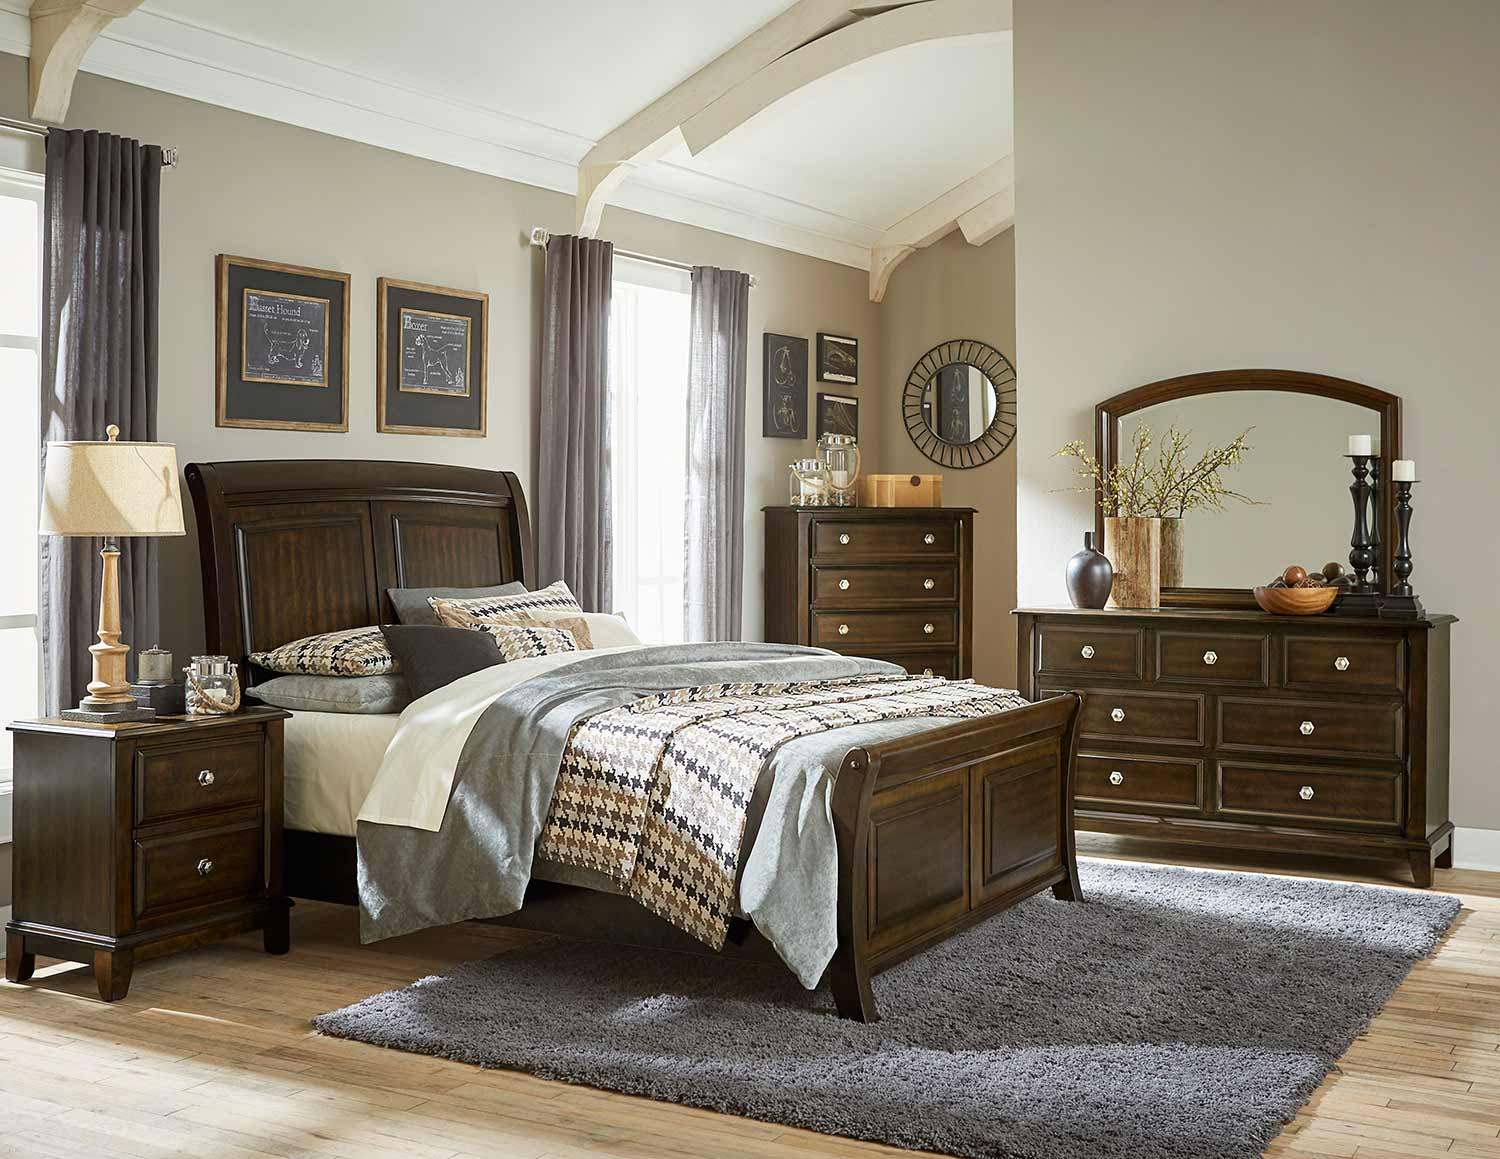 Homelegance Fostoria Bedroom Set - Cherry